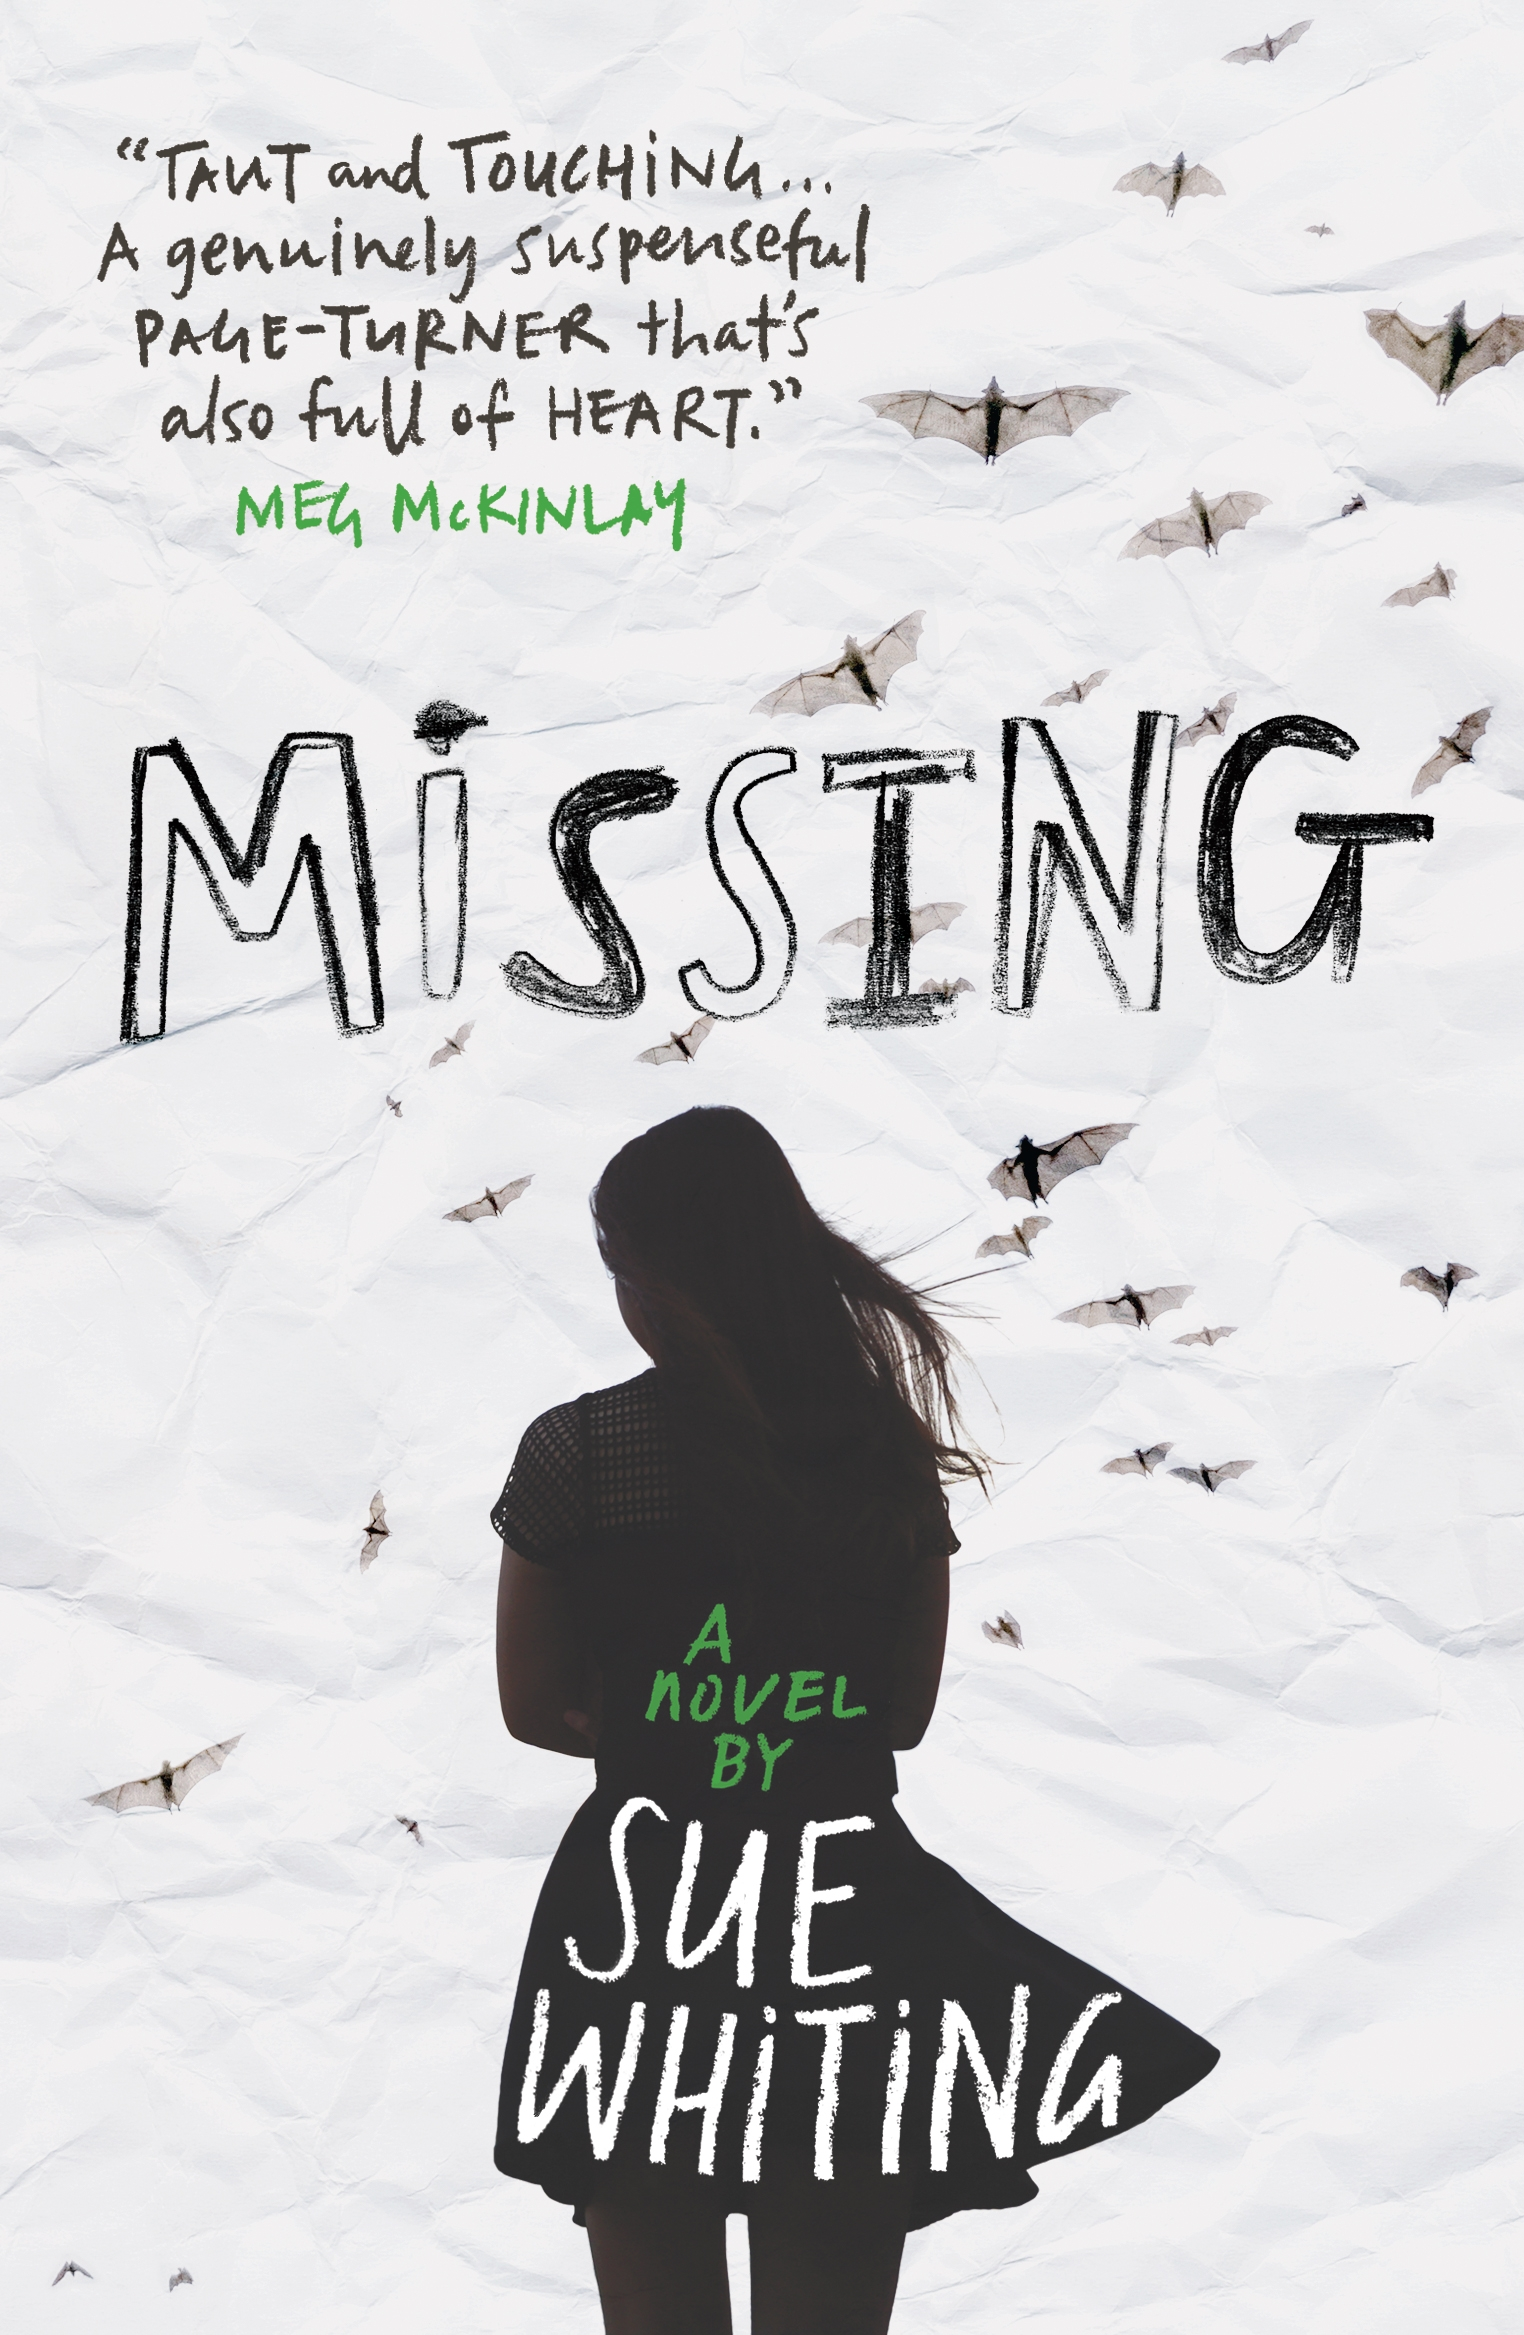 Missingby Sue Whiting